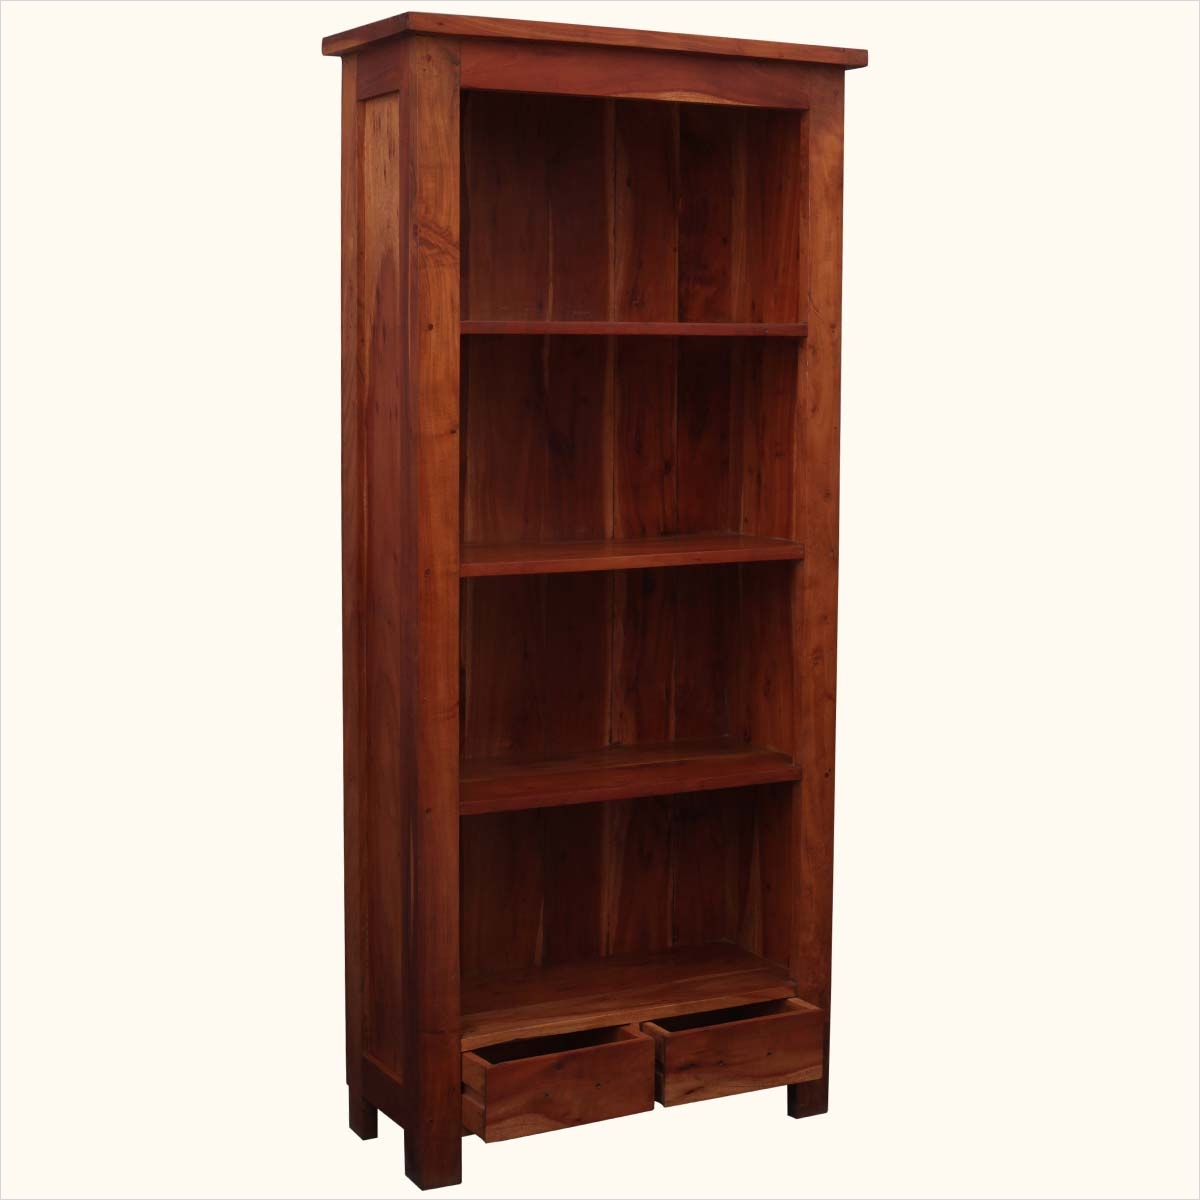 45 Creative Rustic Wall Mounted Bookshelves 29 Furniture Small Unfinished Wood Wall Mounted Shelf with toilet Tissue Holder for Bathroom 2